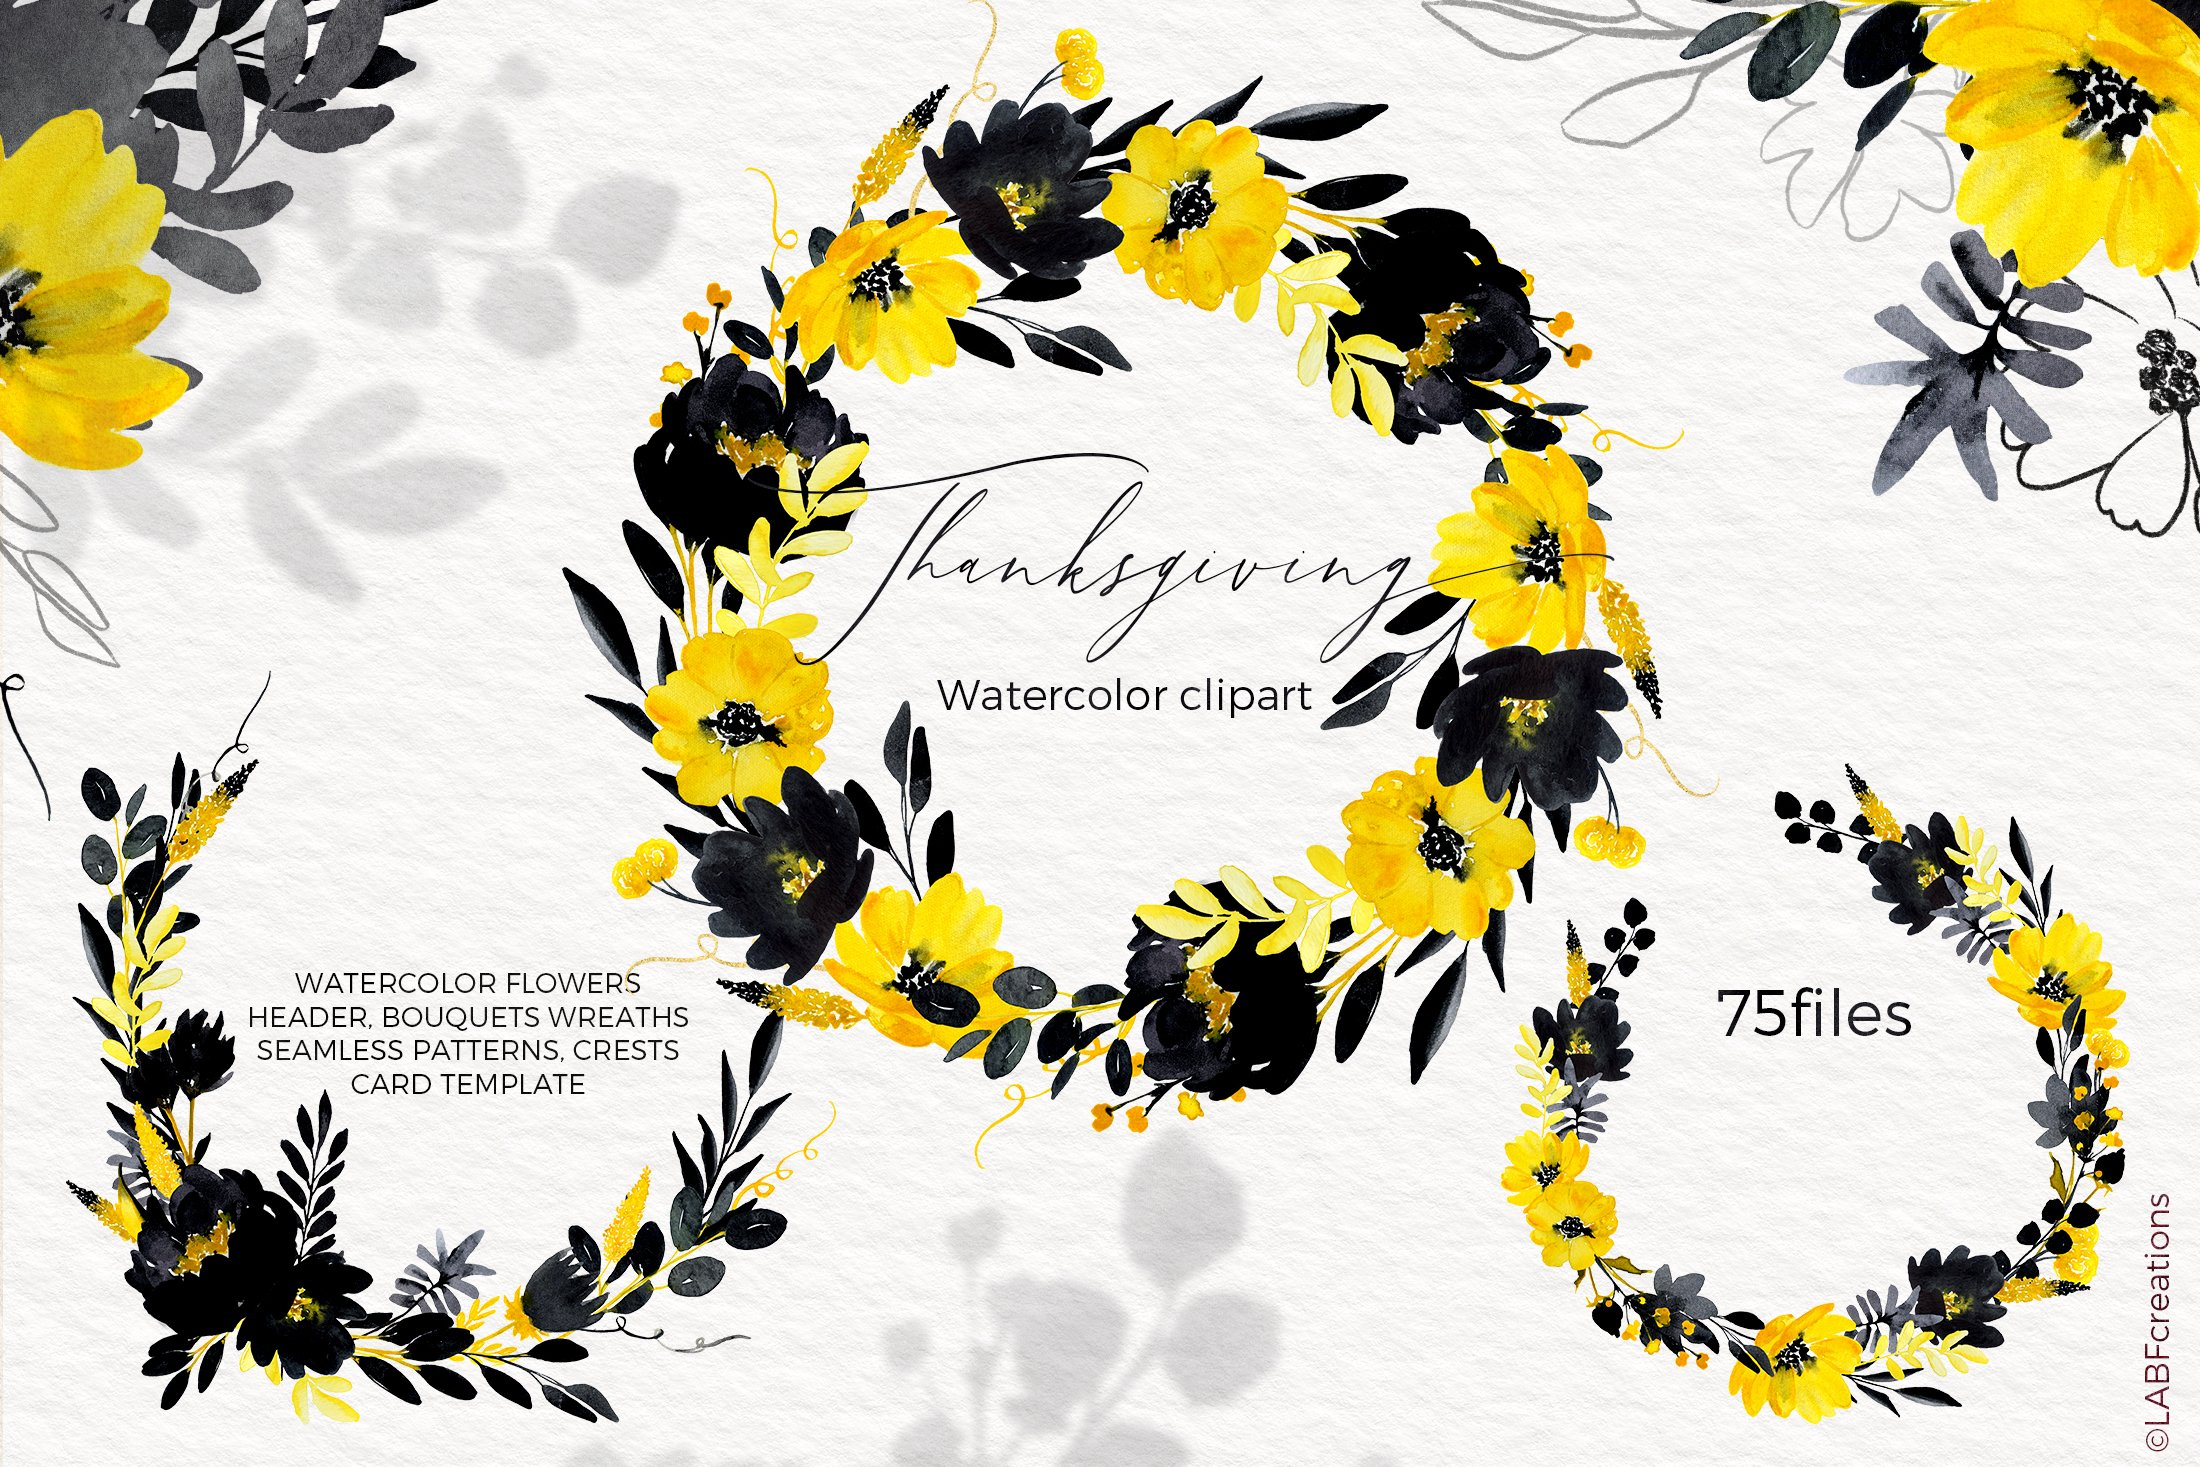 Thanksgiving. Black & Yellow Watercolor flowers example image 6